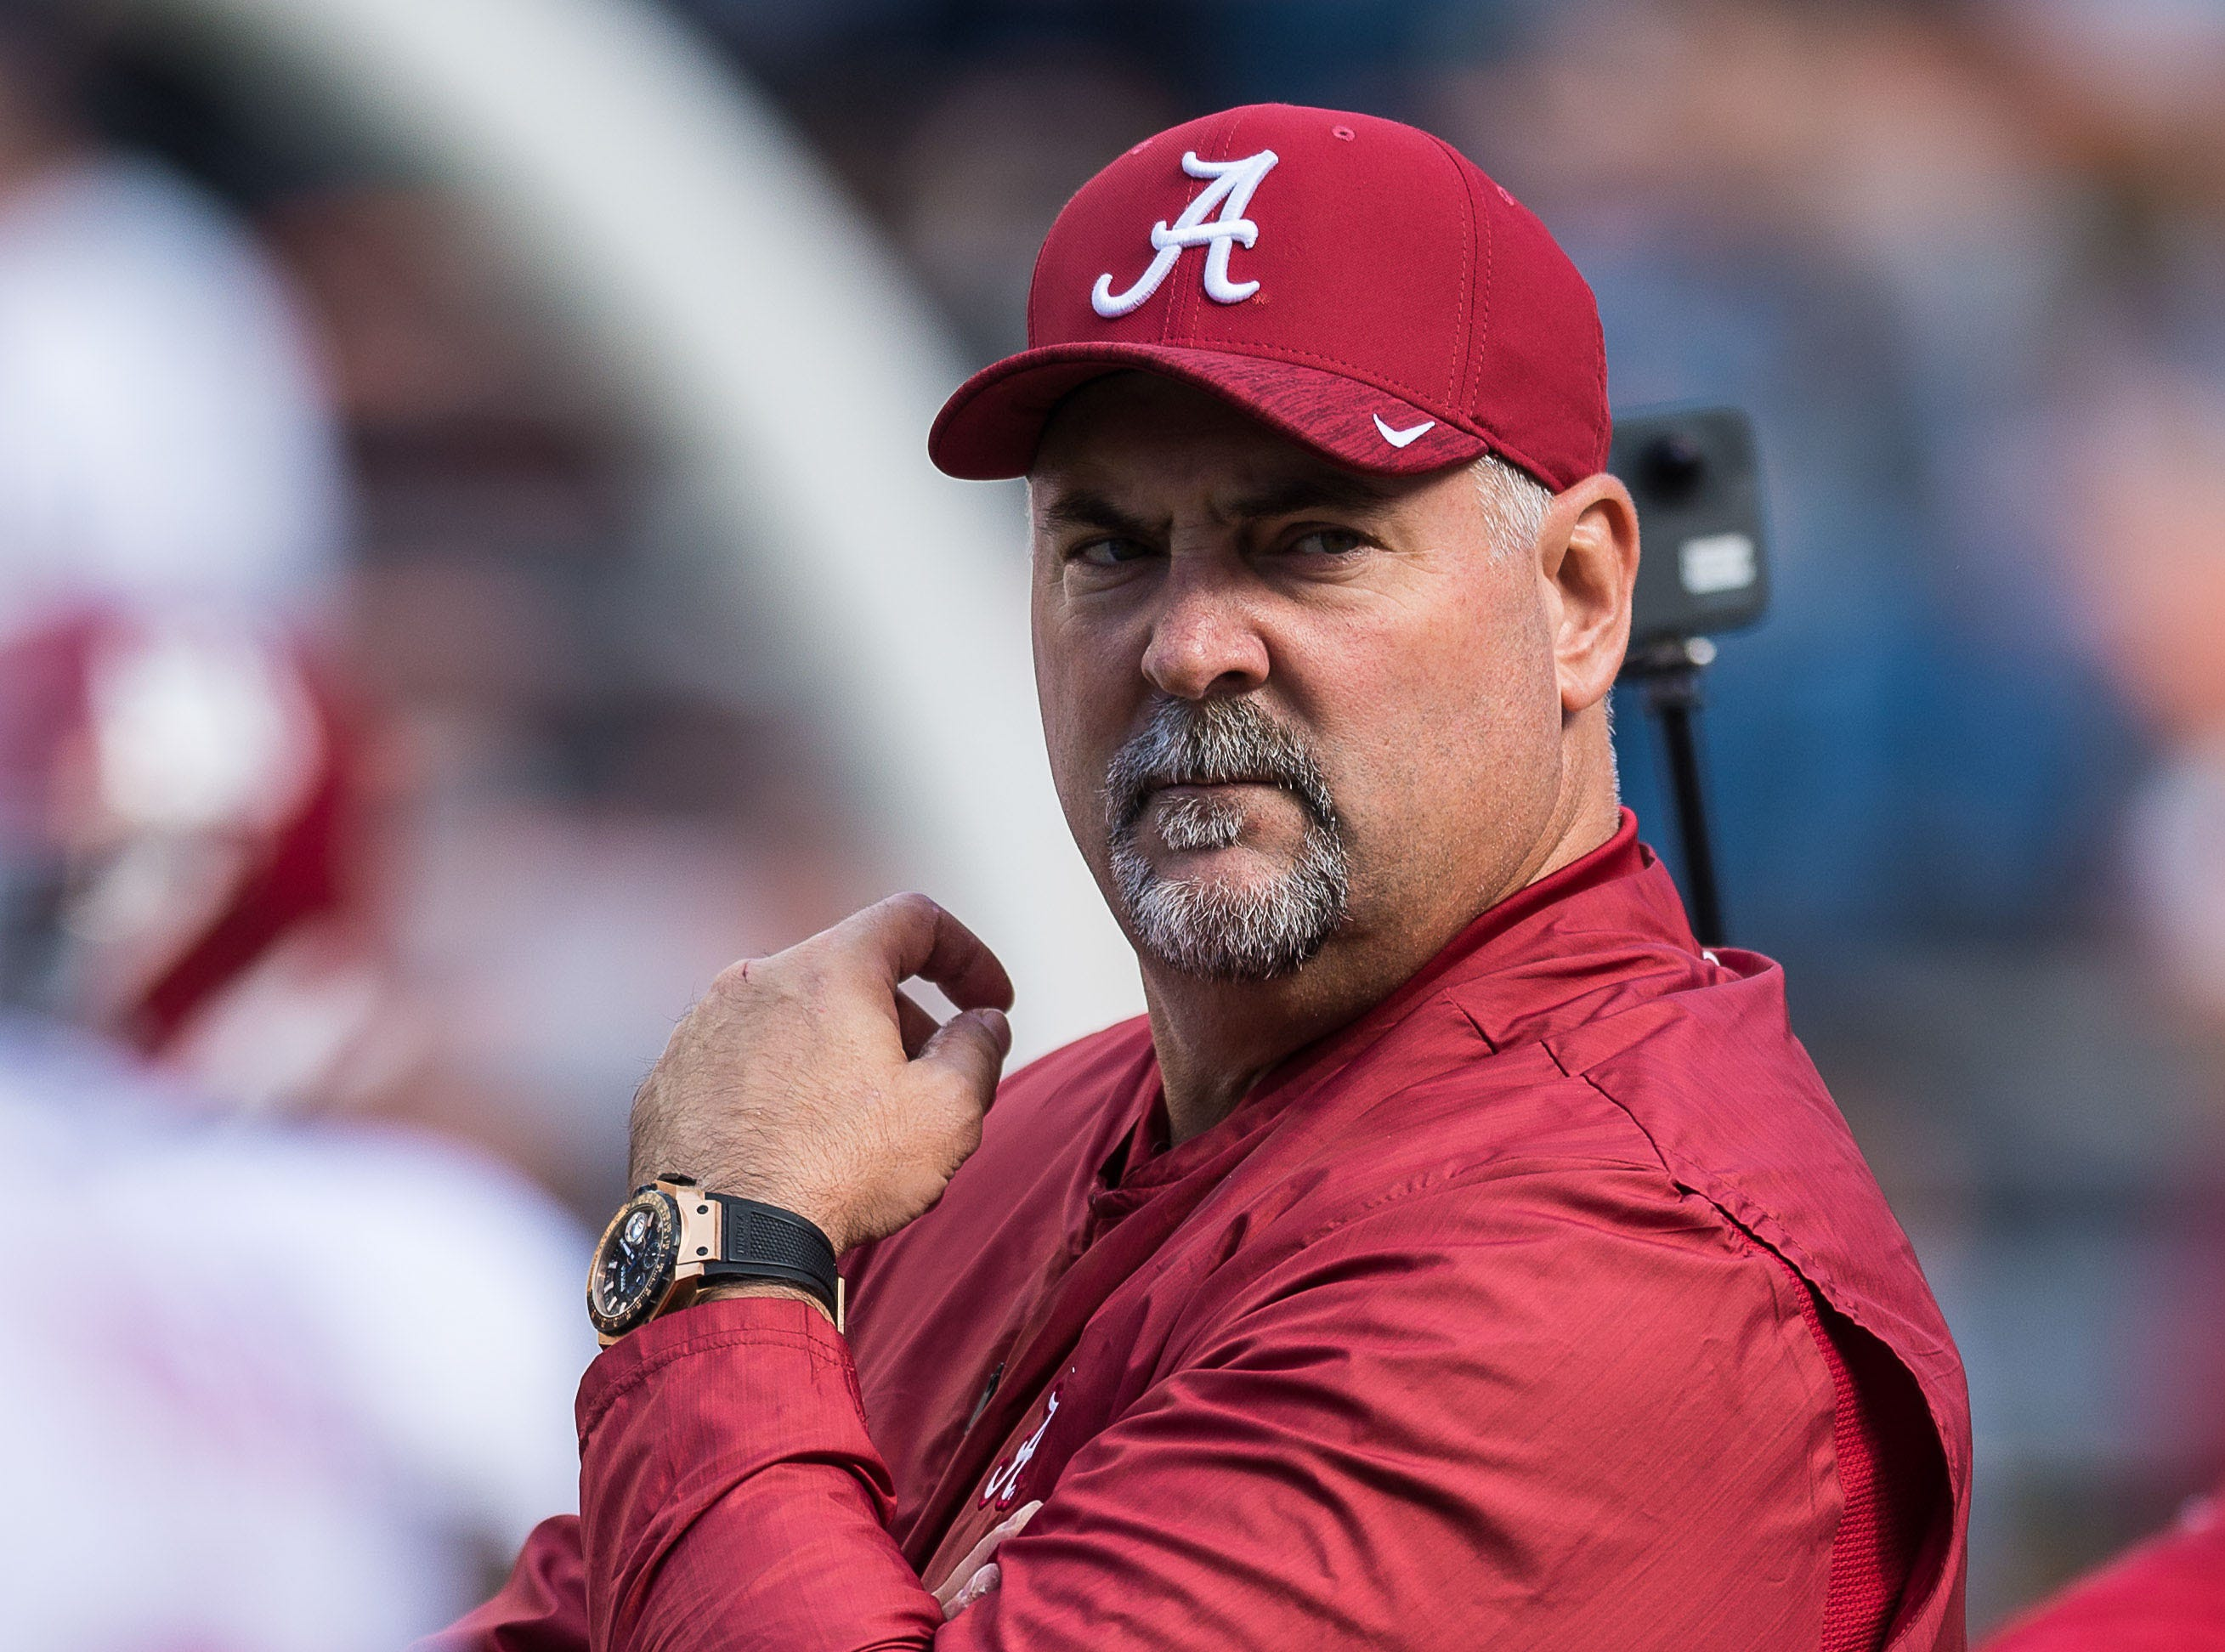 Oct 20, 2018; Knoxville, TN, USA; Alabama Crimson Tide associate head coach and defensive line coach Craig Kuligowski watches warmups before a game against the Tennessee Volunteers at Neyland Stadium. Mandatory Credit: Bryan Lynn-USA TODAY Sports